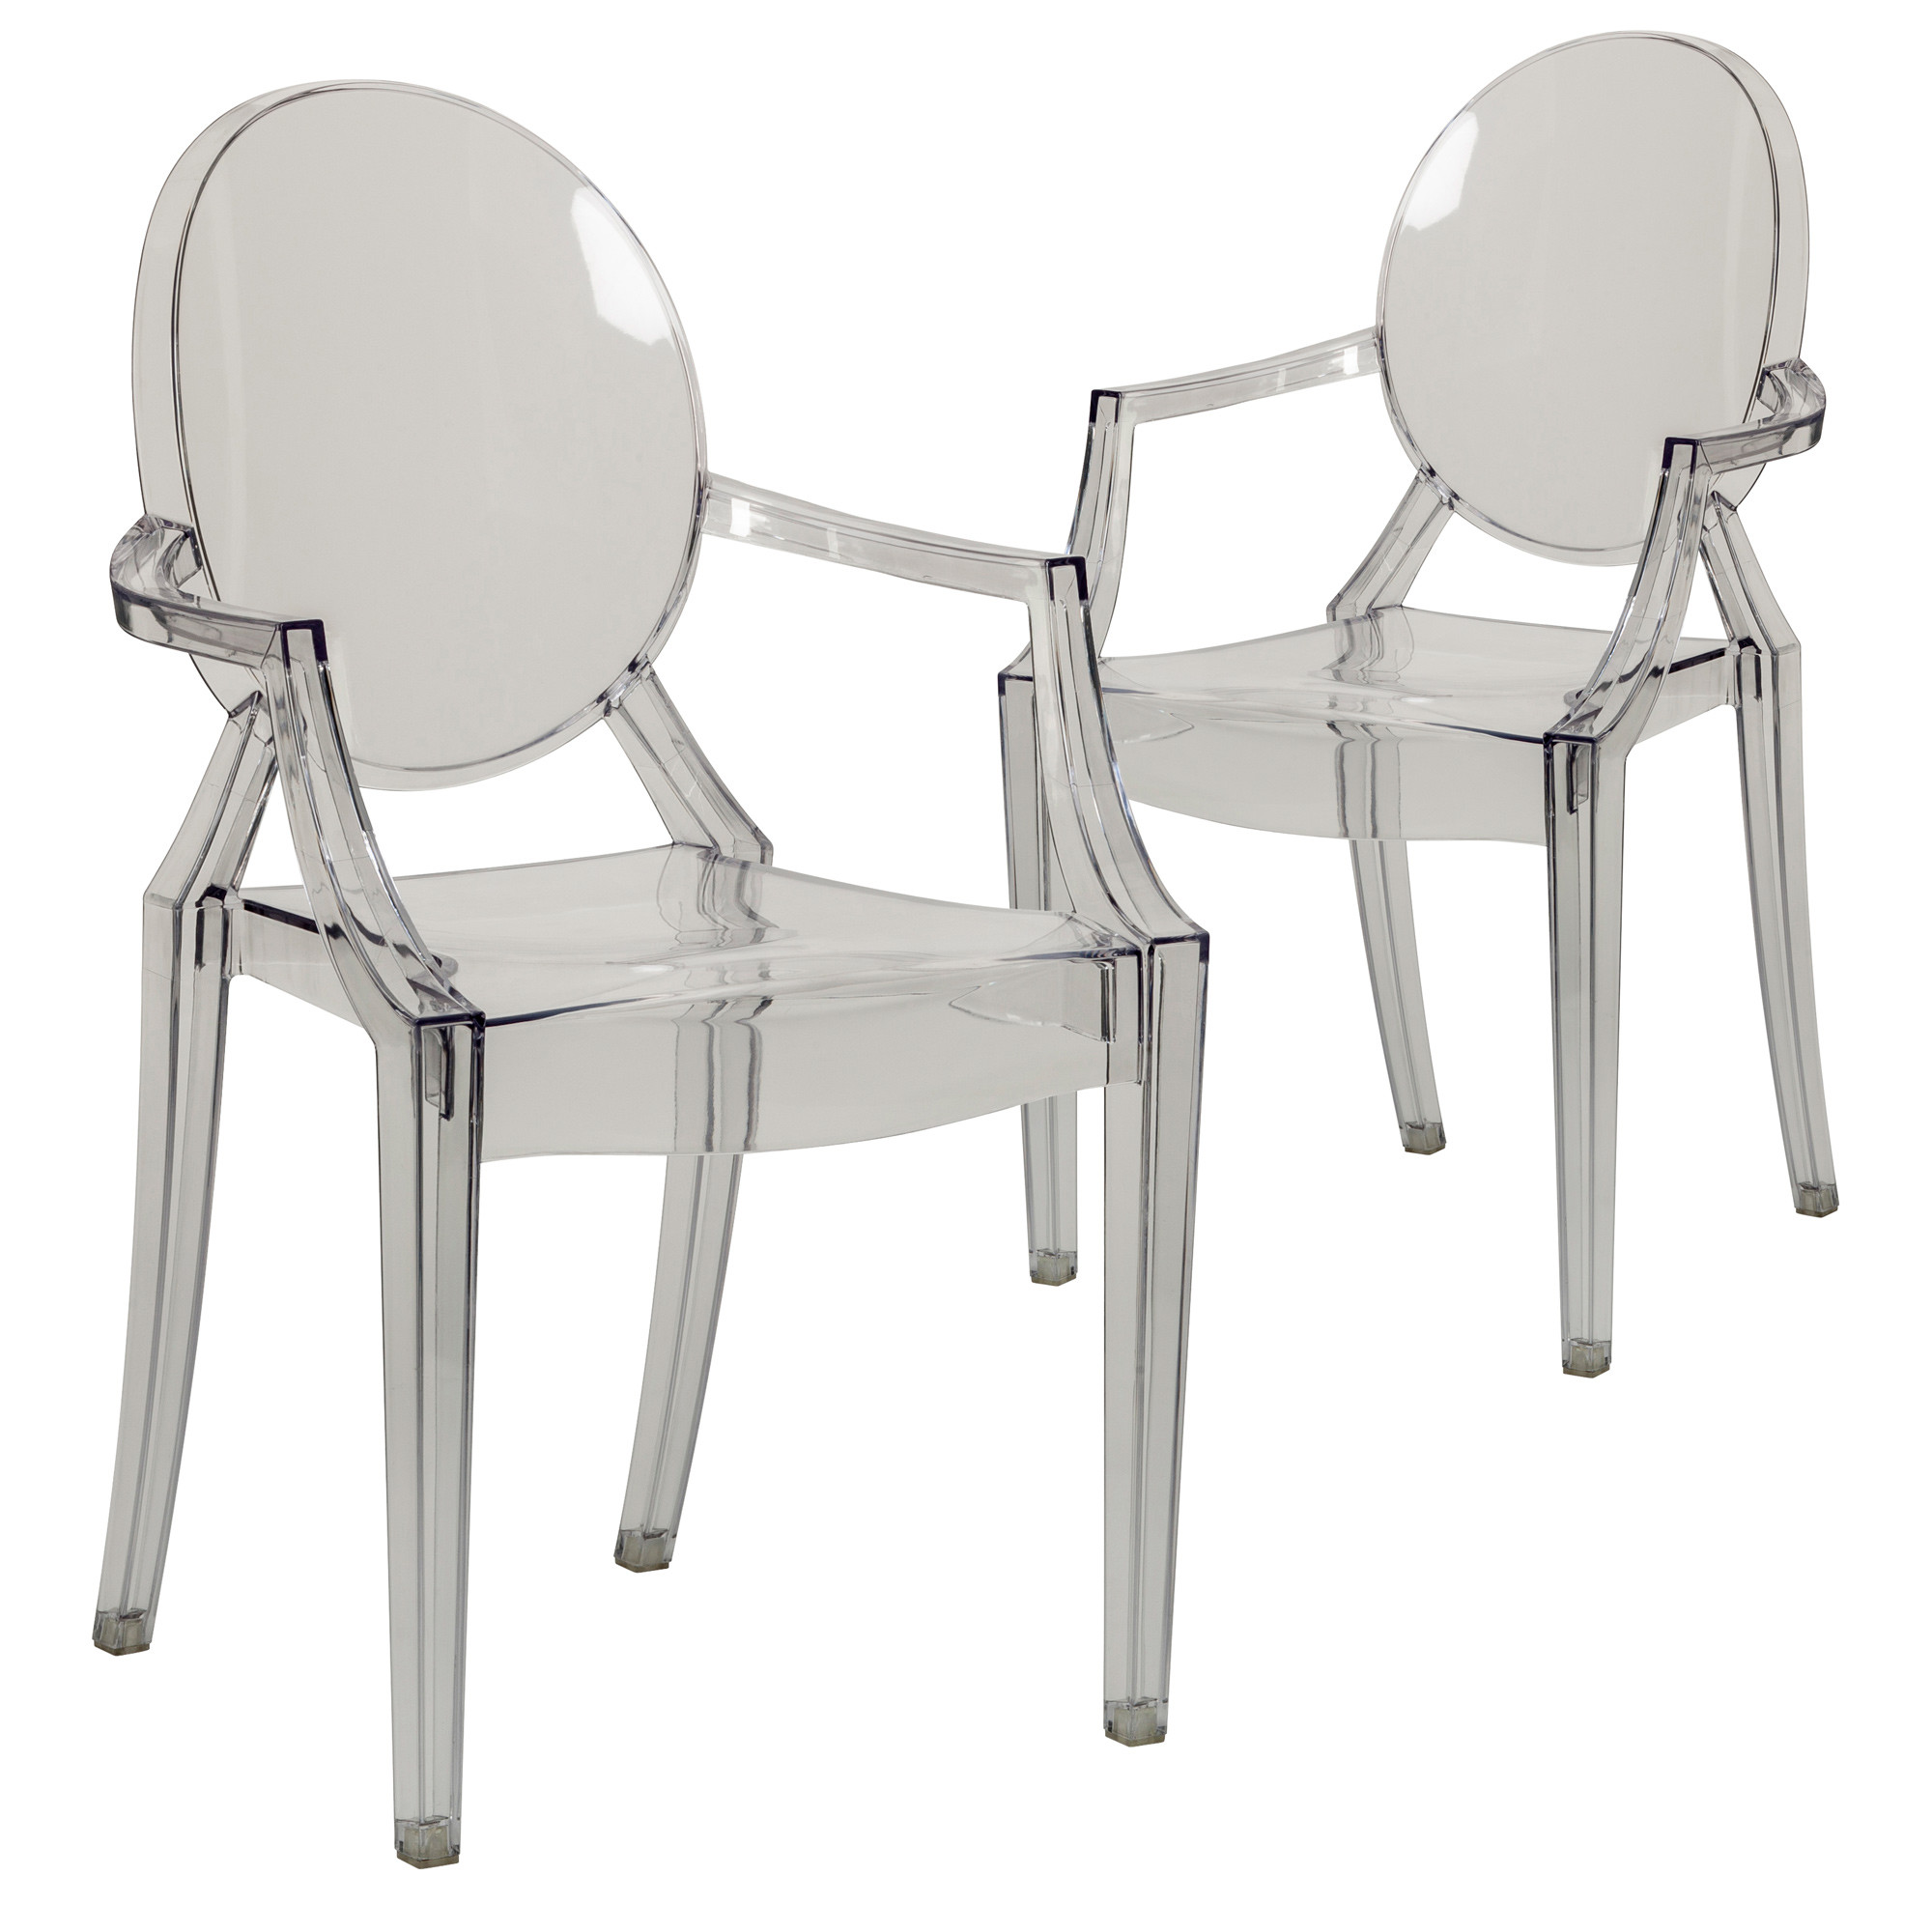 New philippe starck replica ghost armchair ebay - Chaise imitation starck ...